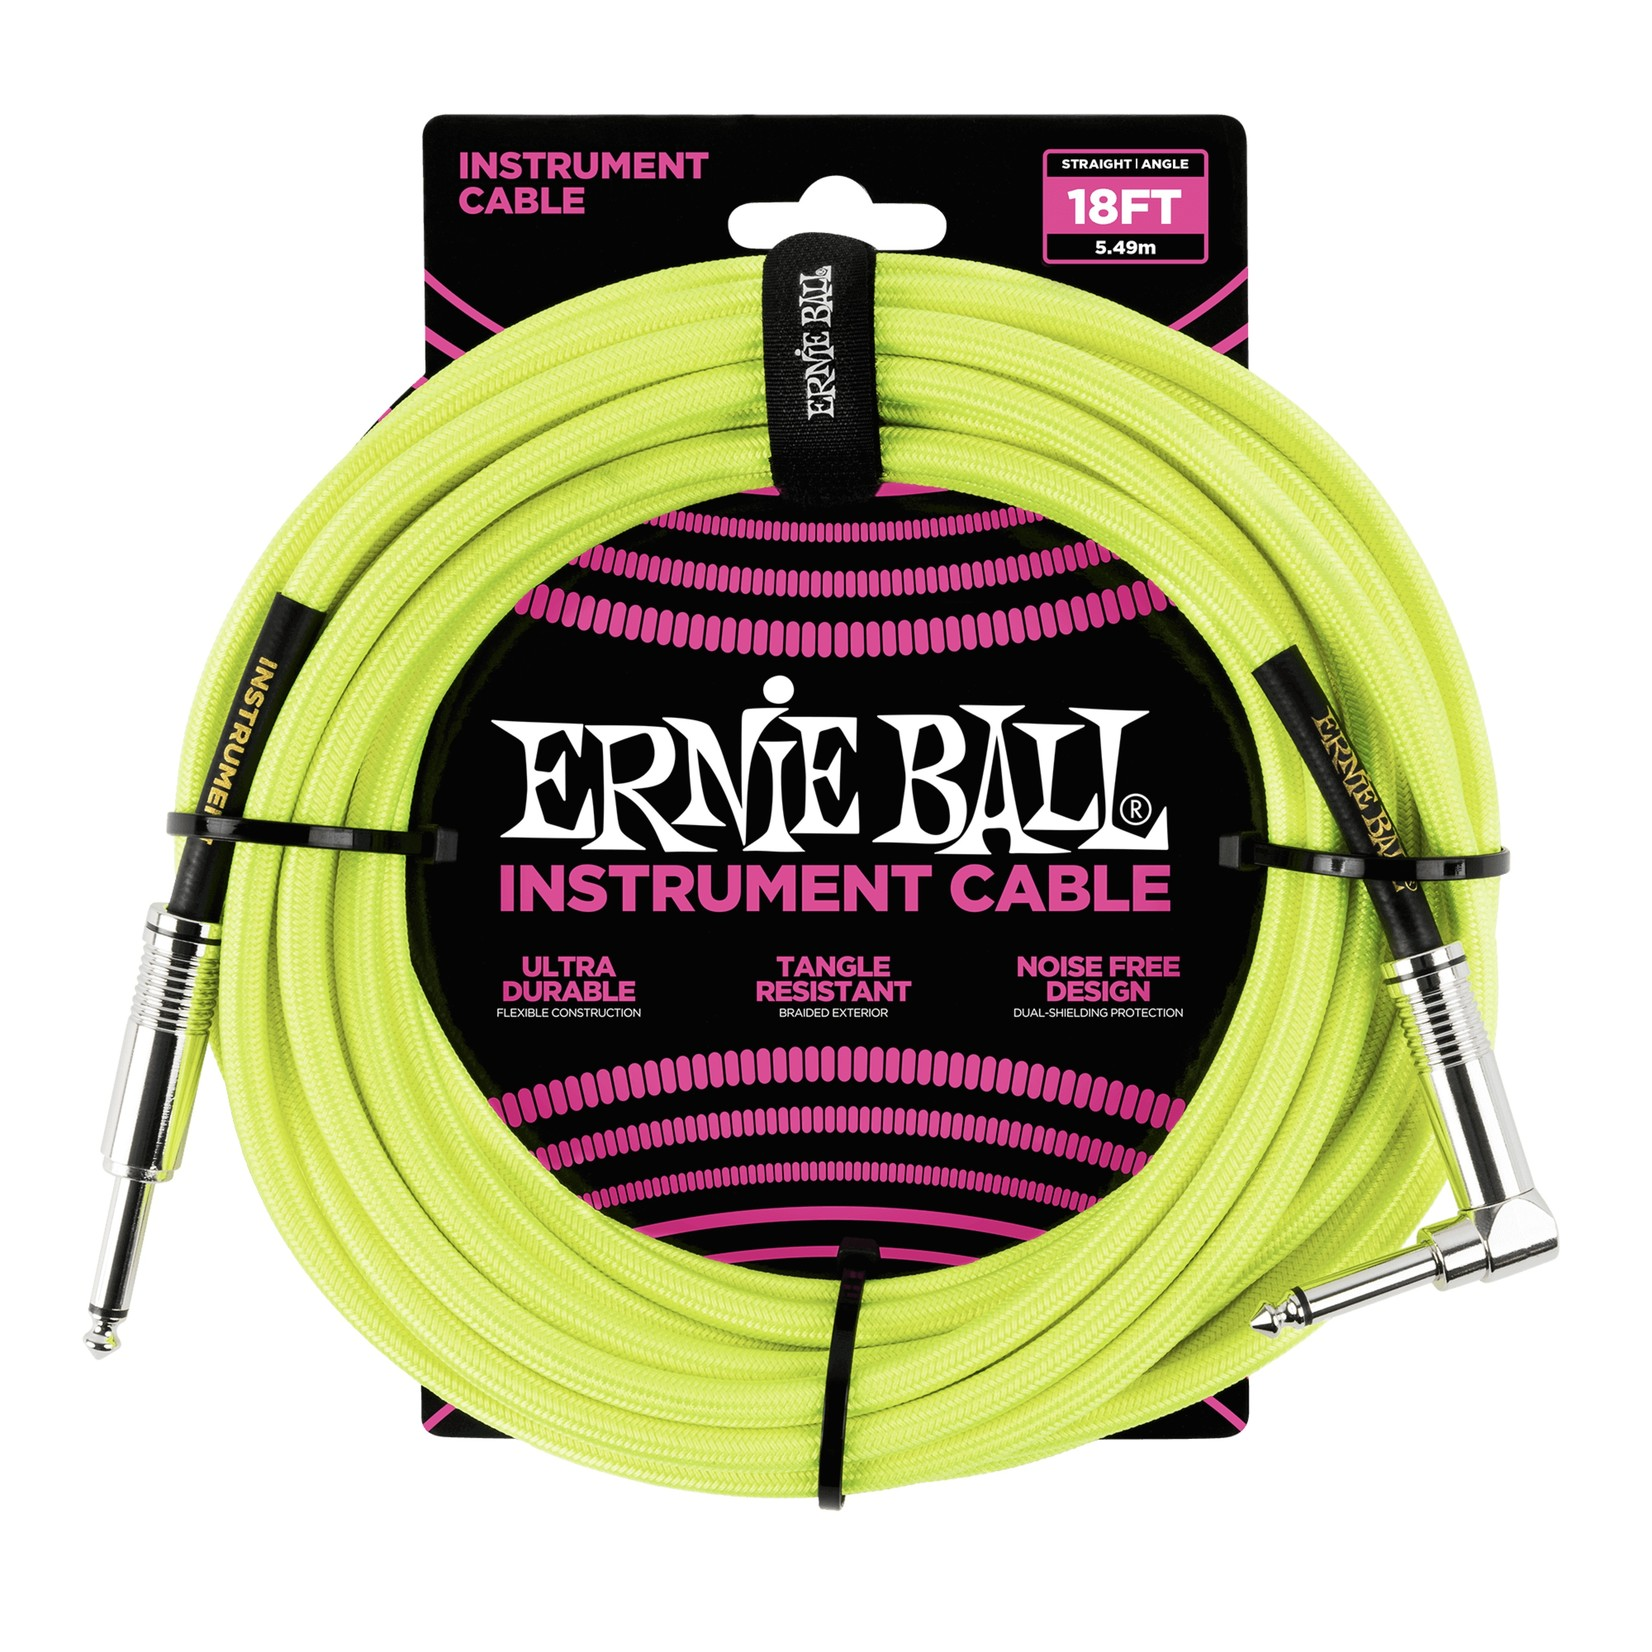 """Ernie Ball Ernie Ball 18' Braided 1/4"""" Straight / Angle Instrument Cable, Neon Yellow (18-foot)"""